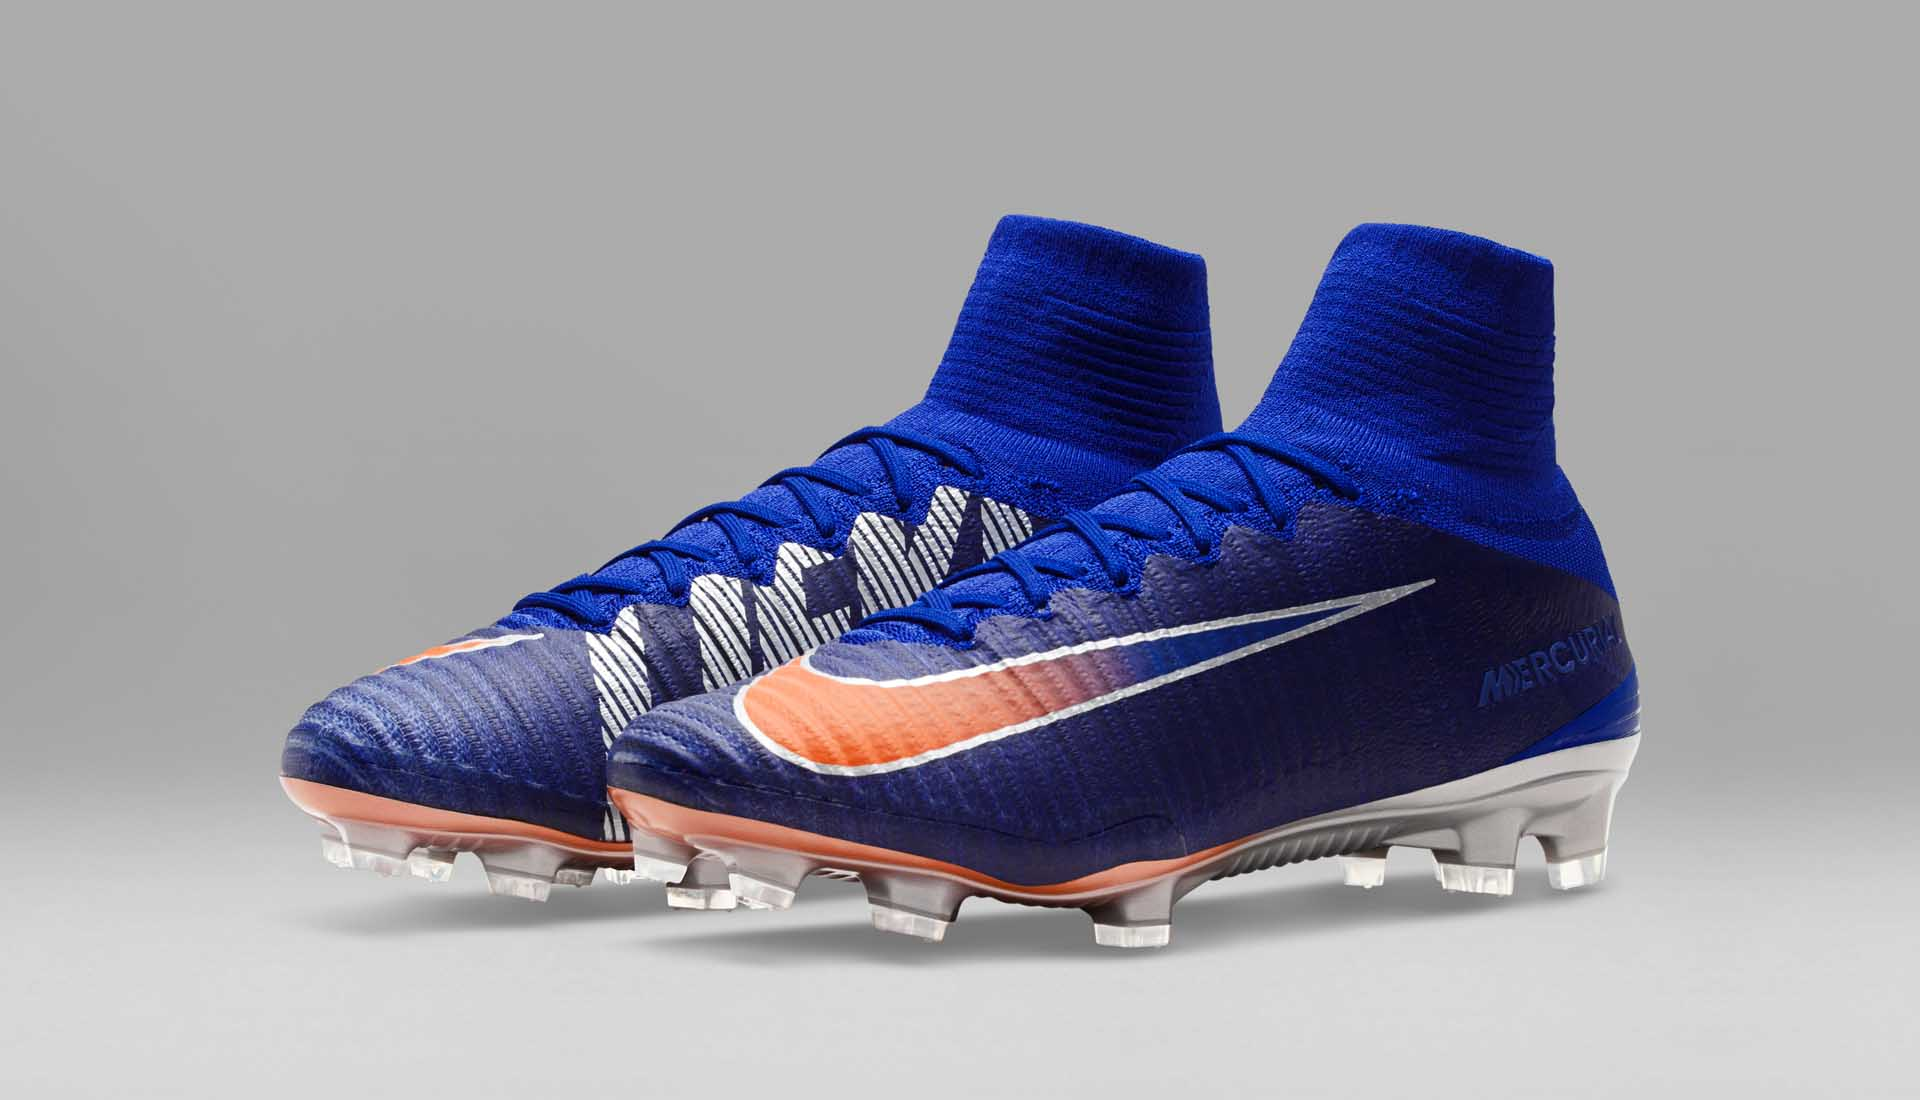 906c6636d8a Nike Celebrate Lieke Martens  Year With Signature Mercurial - SoccerBible.